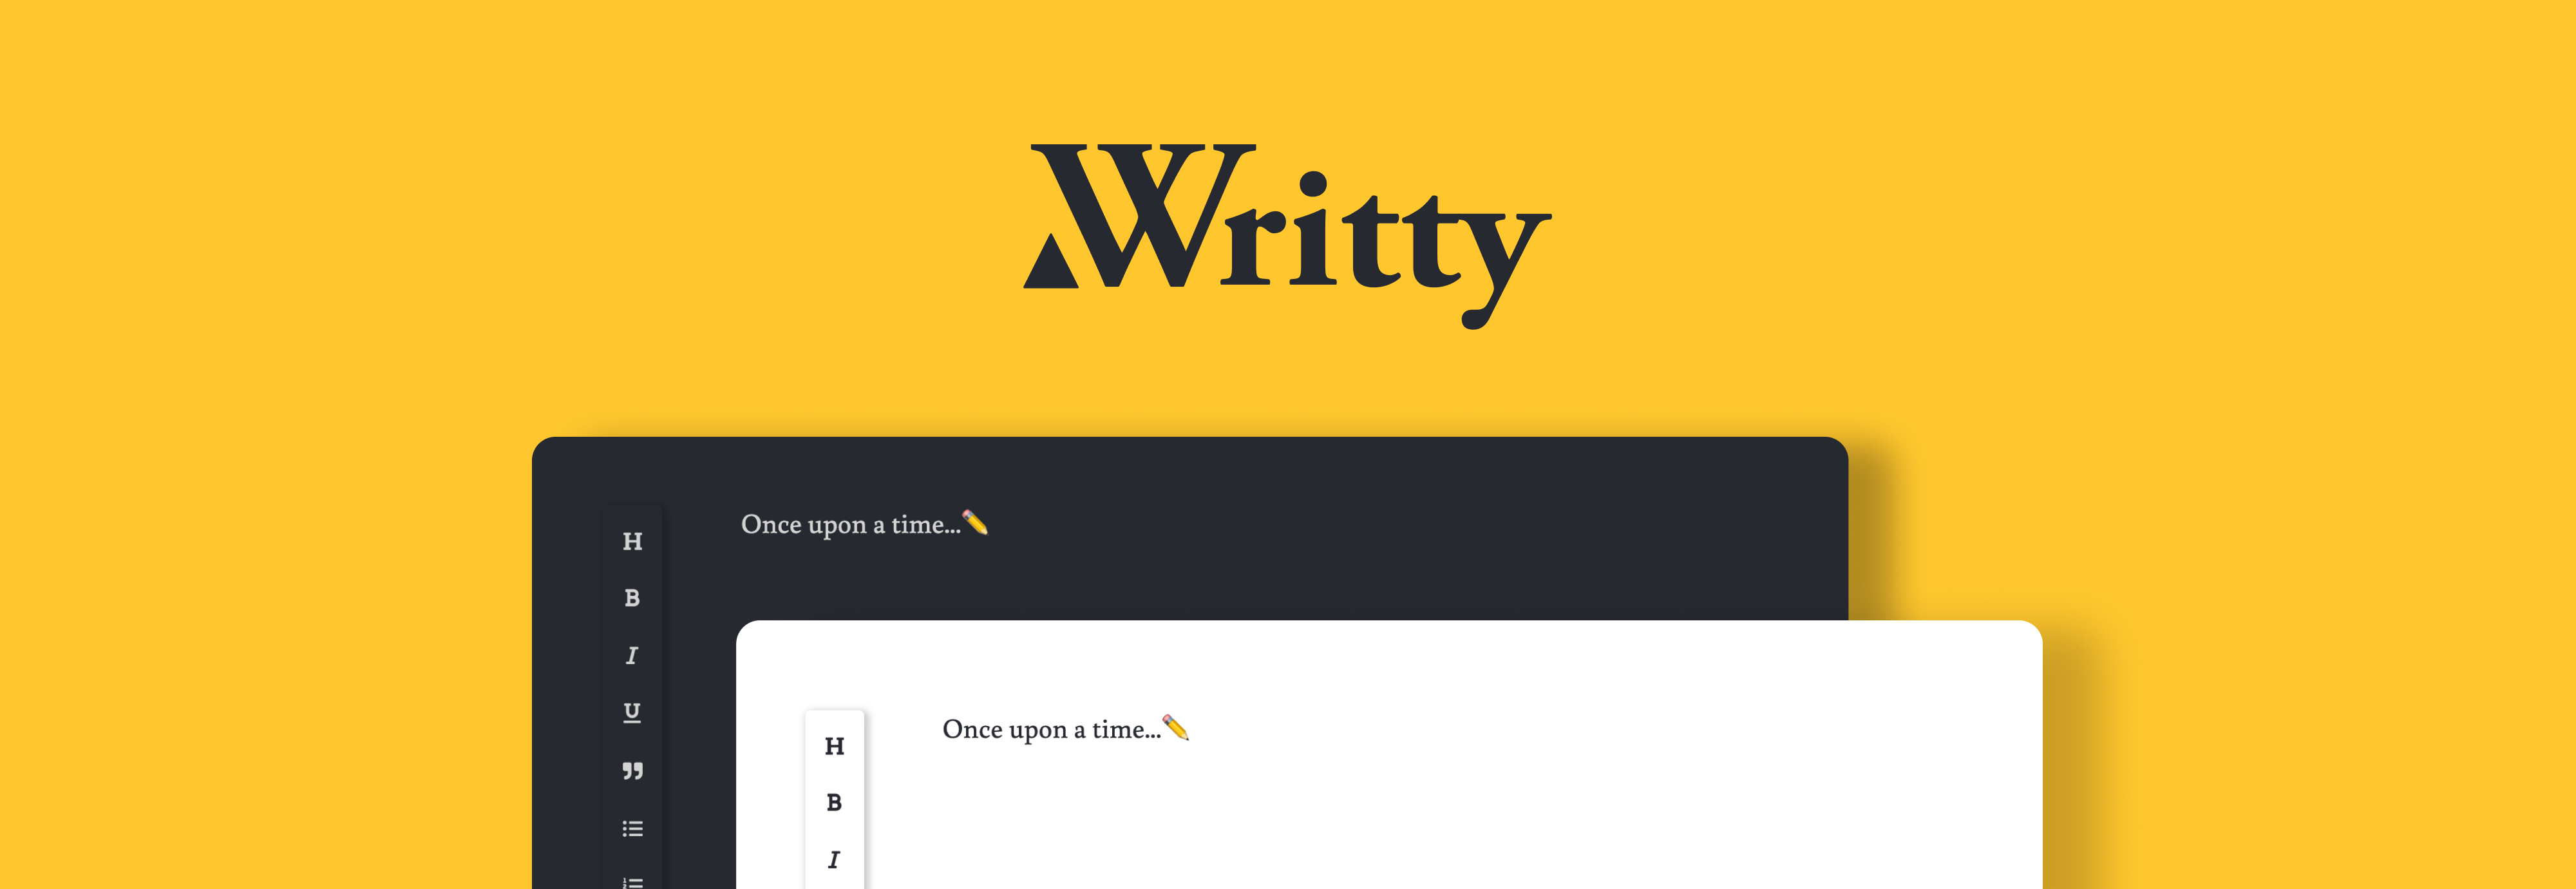 Writty, a minimalist writing app.